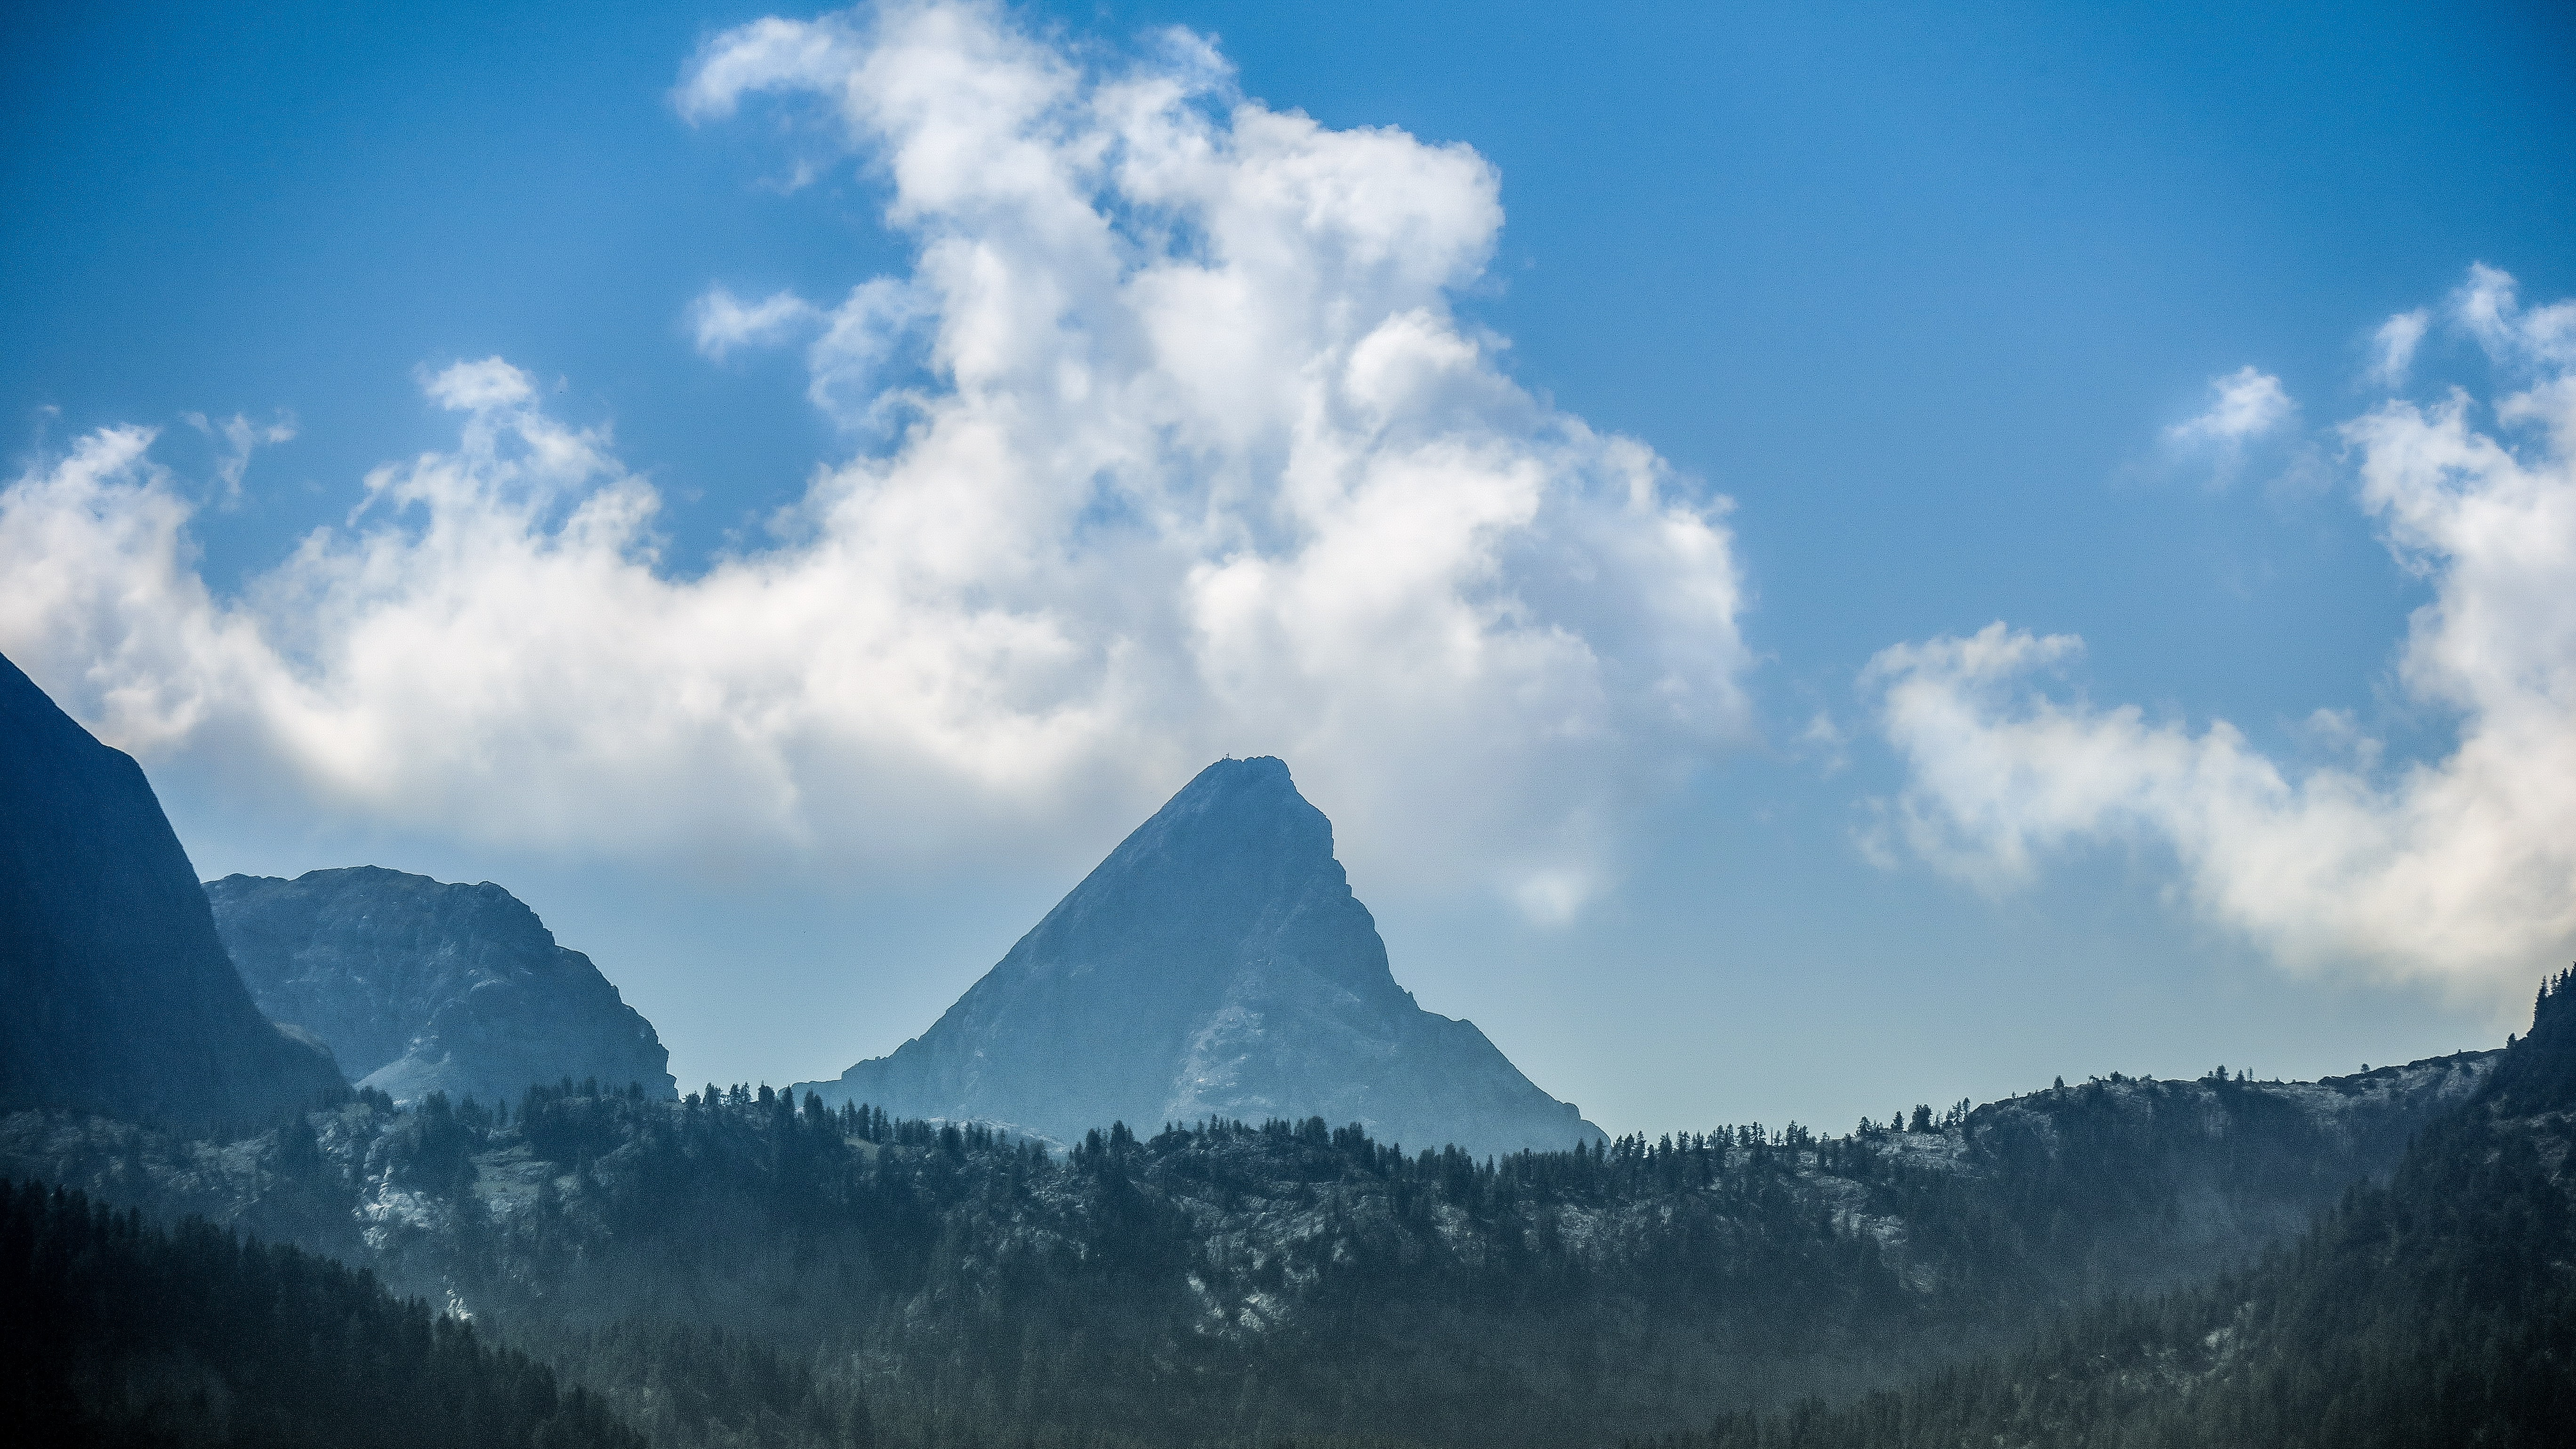 landscape photography of mountains under white clouds